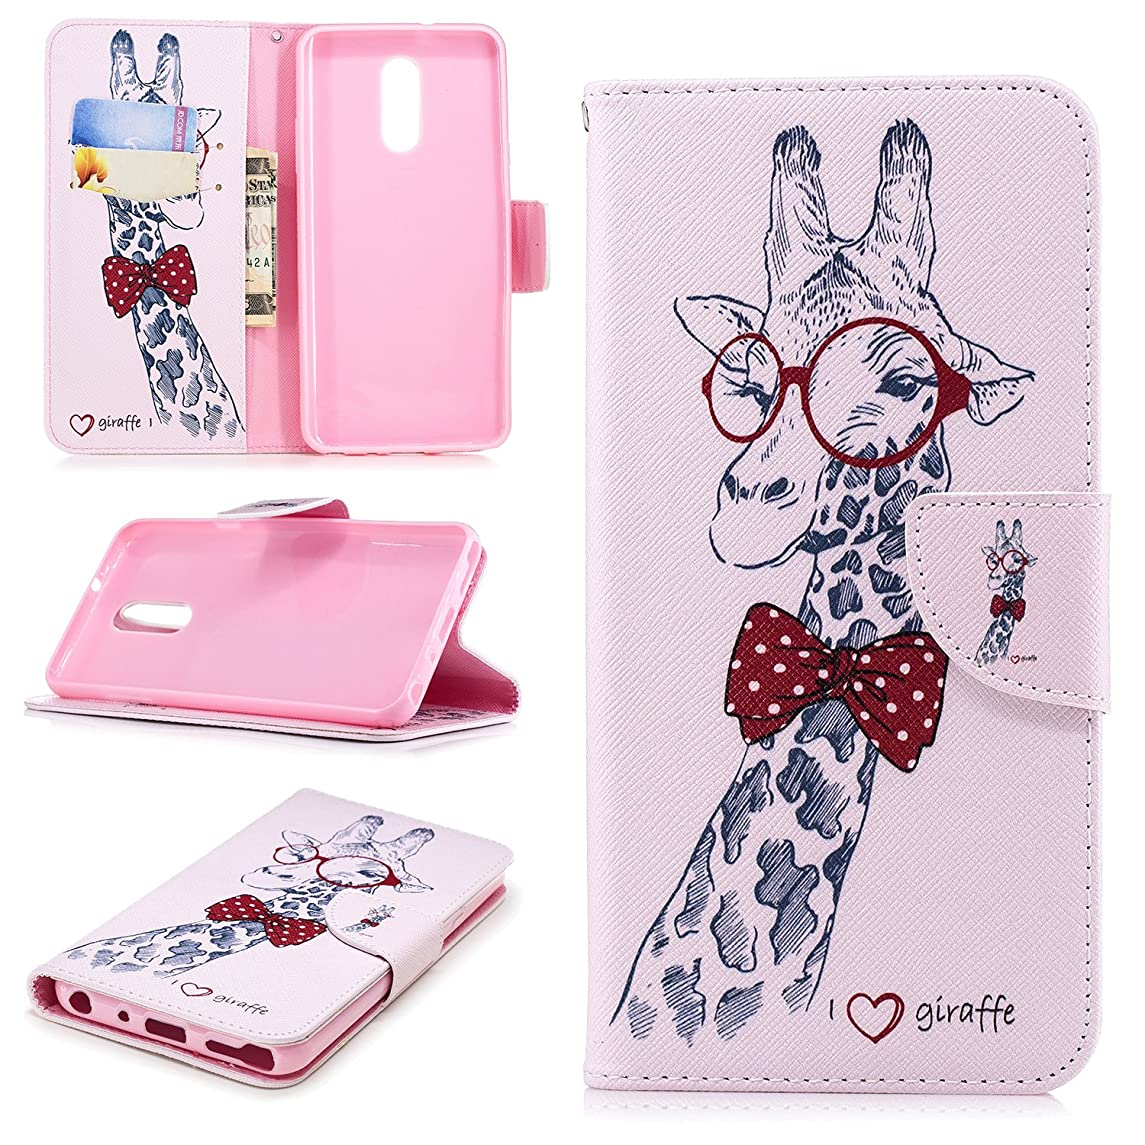 LG Stylo 4 Plus Cartoon Case,LG Q Stylus 4 Phone Case,KAWOO Folio Flip PU Leather Slim Fit Stand Case Book Design Cover for LG Q Stylus 2018,Giraffe